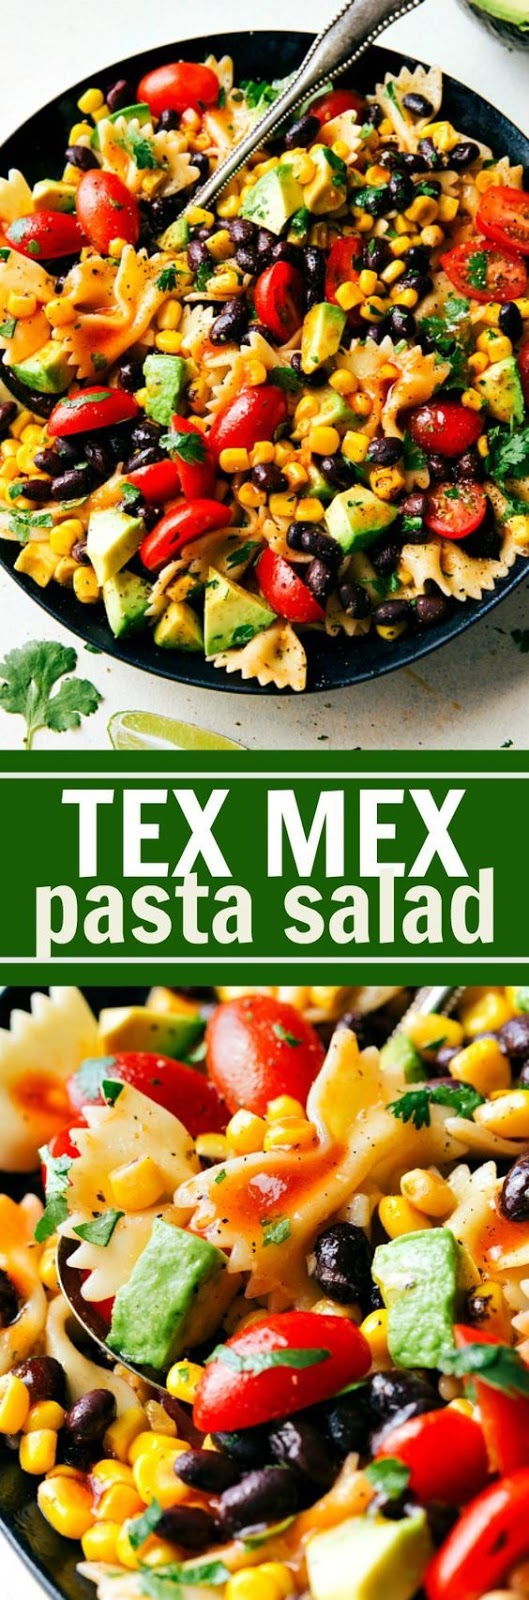 ★★★★☆ 7561 ratings | EASY TEX MEX PASTA SALAD  #HEALTHYFOOD #EASYRECIPES #DINNER #LAUCH #DELICIOUS #EASY #HOLIDAYS #RECIPE #DESSERTS #SPECIALDIET #WORLDCUISINE #CAKE #APPETIZERS #HEALTHYRECIPES #DRINKS #COOKINGMETHOD #ITALIANRECIPES #MEAT #VEGANRECIPES #COOKIES #PASTA #FRUIT #SALAD #SOUPAPPETIZERS #NONALCOHOLICDRINKS #MEALPLANNING #VEGETABLES #SOUP #PASTRY #CHOCOLATE #DAIRY #ALCOHOLICDRINKS #BULGURSALAD #BAKING #SNACKS #BEEFRECIPES #MEATAPPETIZERS #MEXICANRECIPES #BREAD #ASIANRECIPES #SEAFOODAPPETIZERS #MUFFINS #BREAKFASTANDBRUNCH #CONDIMENTS #CUPCAKES #CHEESE #CHICKENRECIPES #PIE #COFFEE #NOBAKEDESSERTS #HEALTHYSNACKS #SEAFOOD #GRAIN #LUNCHESDINNERS #MEXICAN #QUICKBREAD #LIQUOR